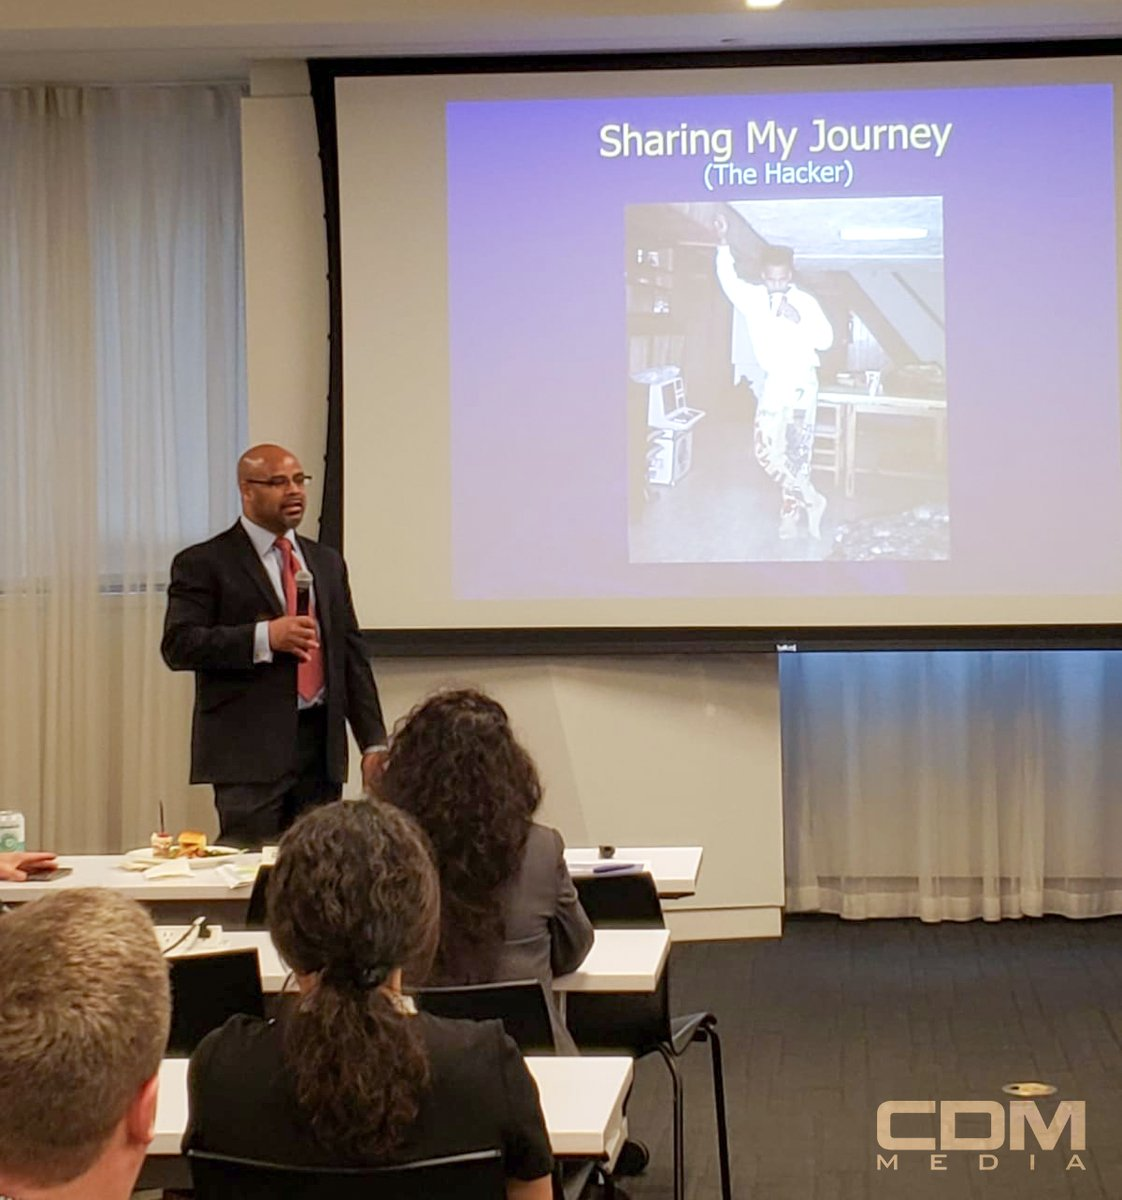 Big thanks to our lunchtime speaker Cedric Curry, CISO of NYC Citywide Administrative Services for his presentation on what comes next for cybersecurity.  #CISONY #CIONY #Cybersecurity #cybersecurityconference #cybersecuritysummit https://t.co/w3FLz8ZBLB